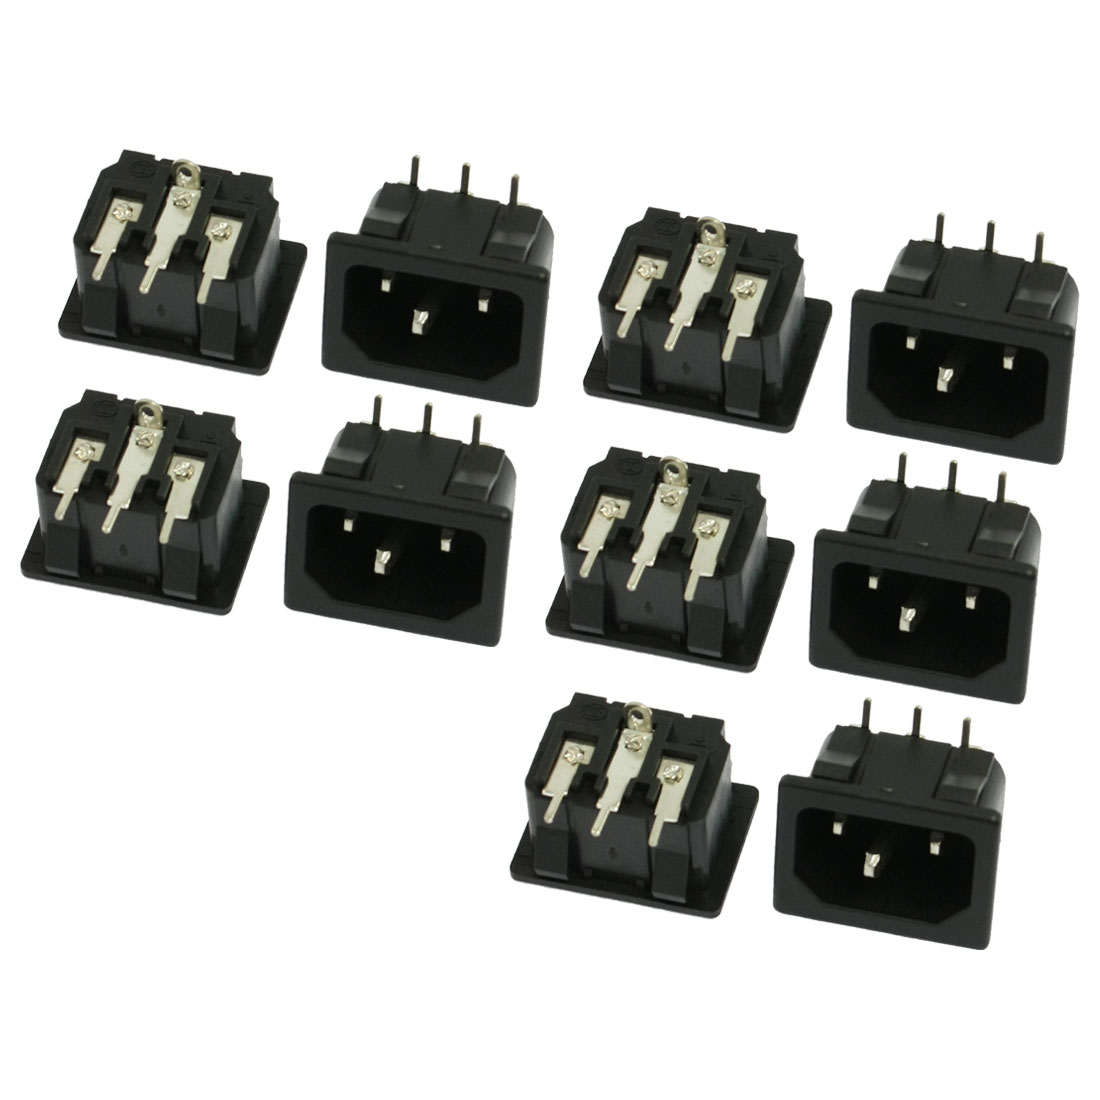 10 Pcs Black Bent Terminal IEC320 C14 Inlet Power Plug Socket AC 250V 10A